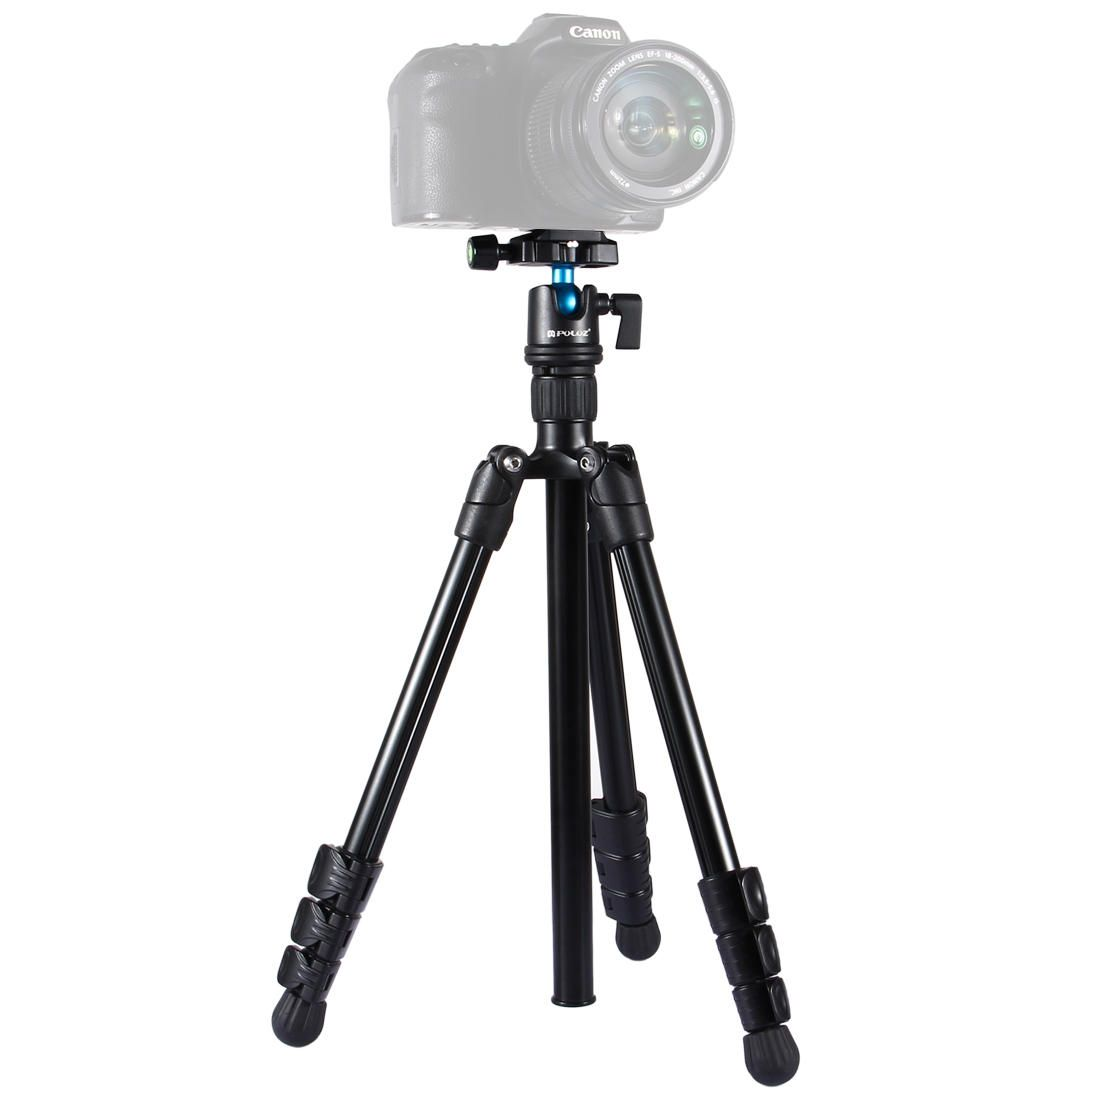 PULUZ PU3009 4 Section Folding Legs Metal Tripod Mount with 360 Degree Ball Head for DSLR